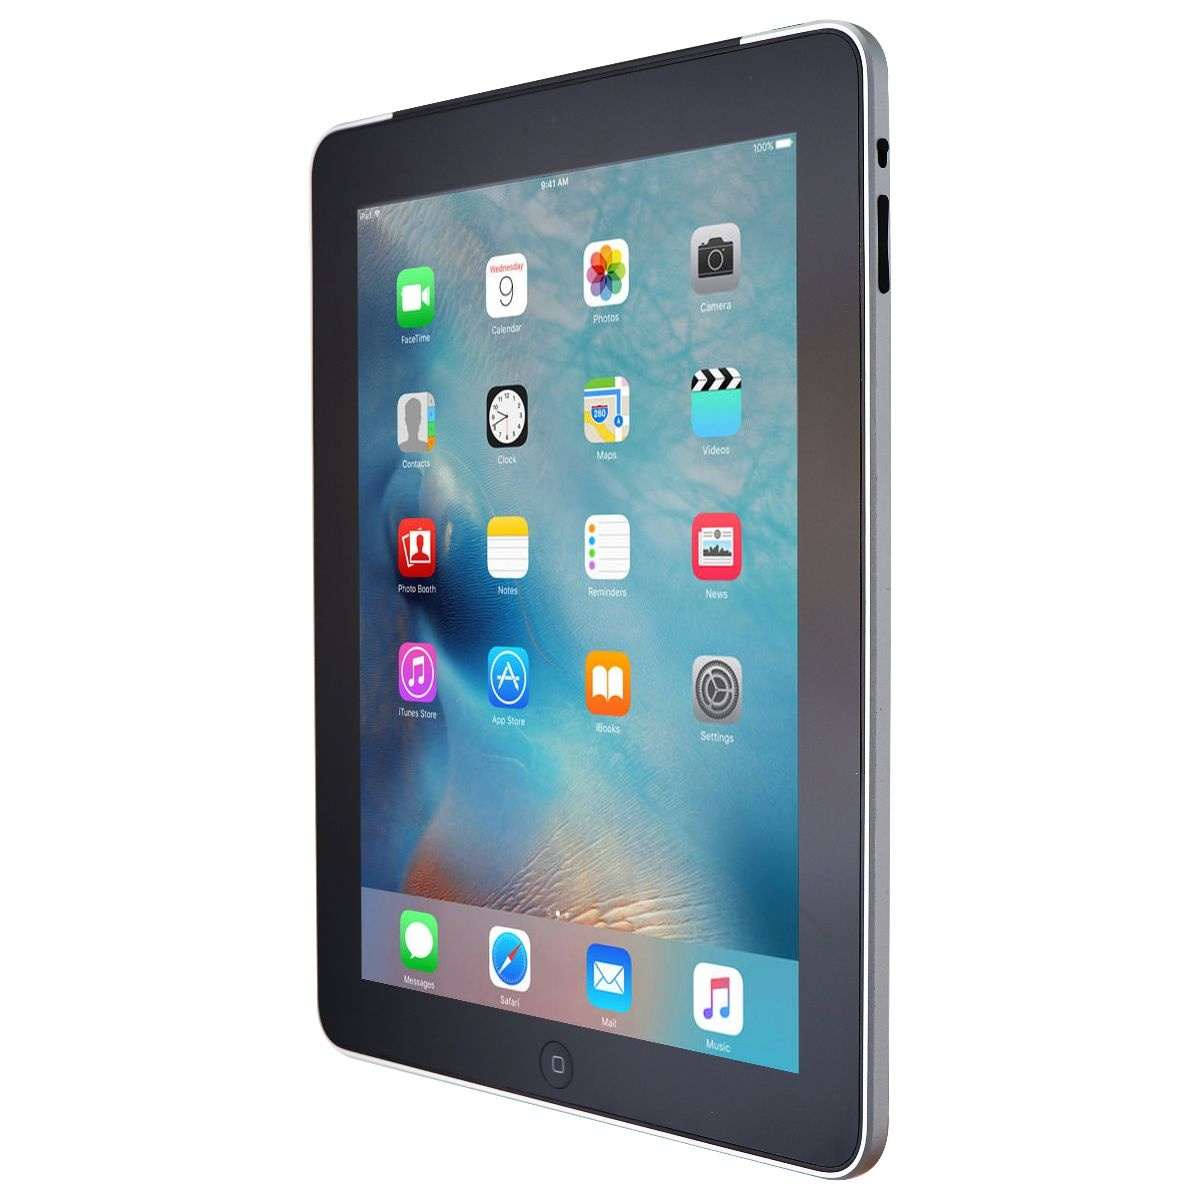 Apple iPad 9.7 (1st Gen) Tablet A1337 (AT&T Only) - 64GB / Black